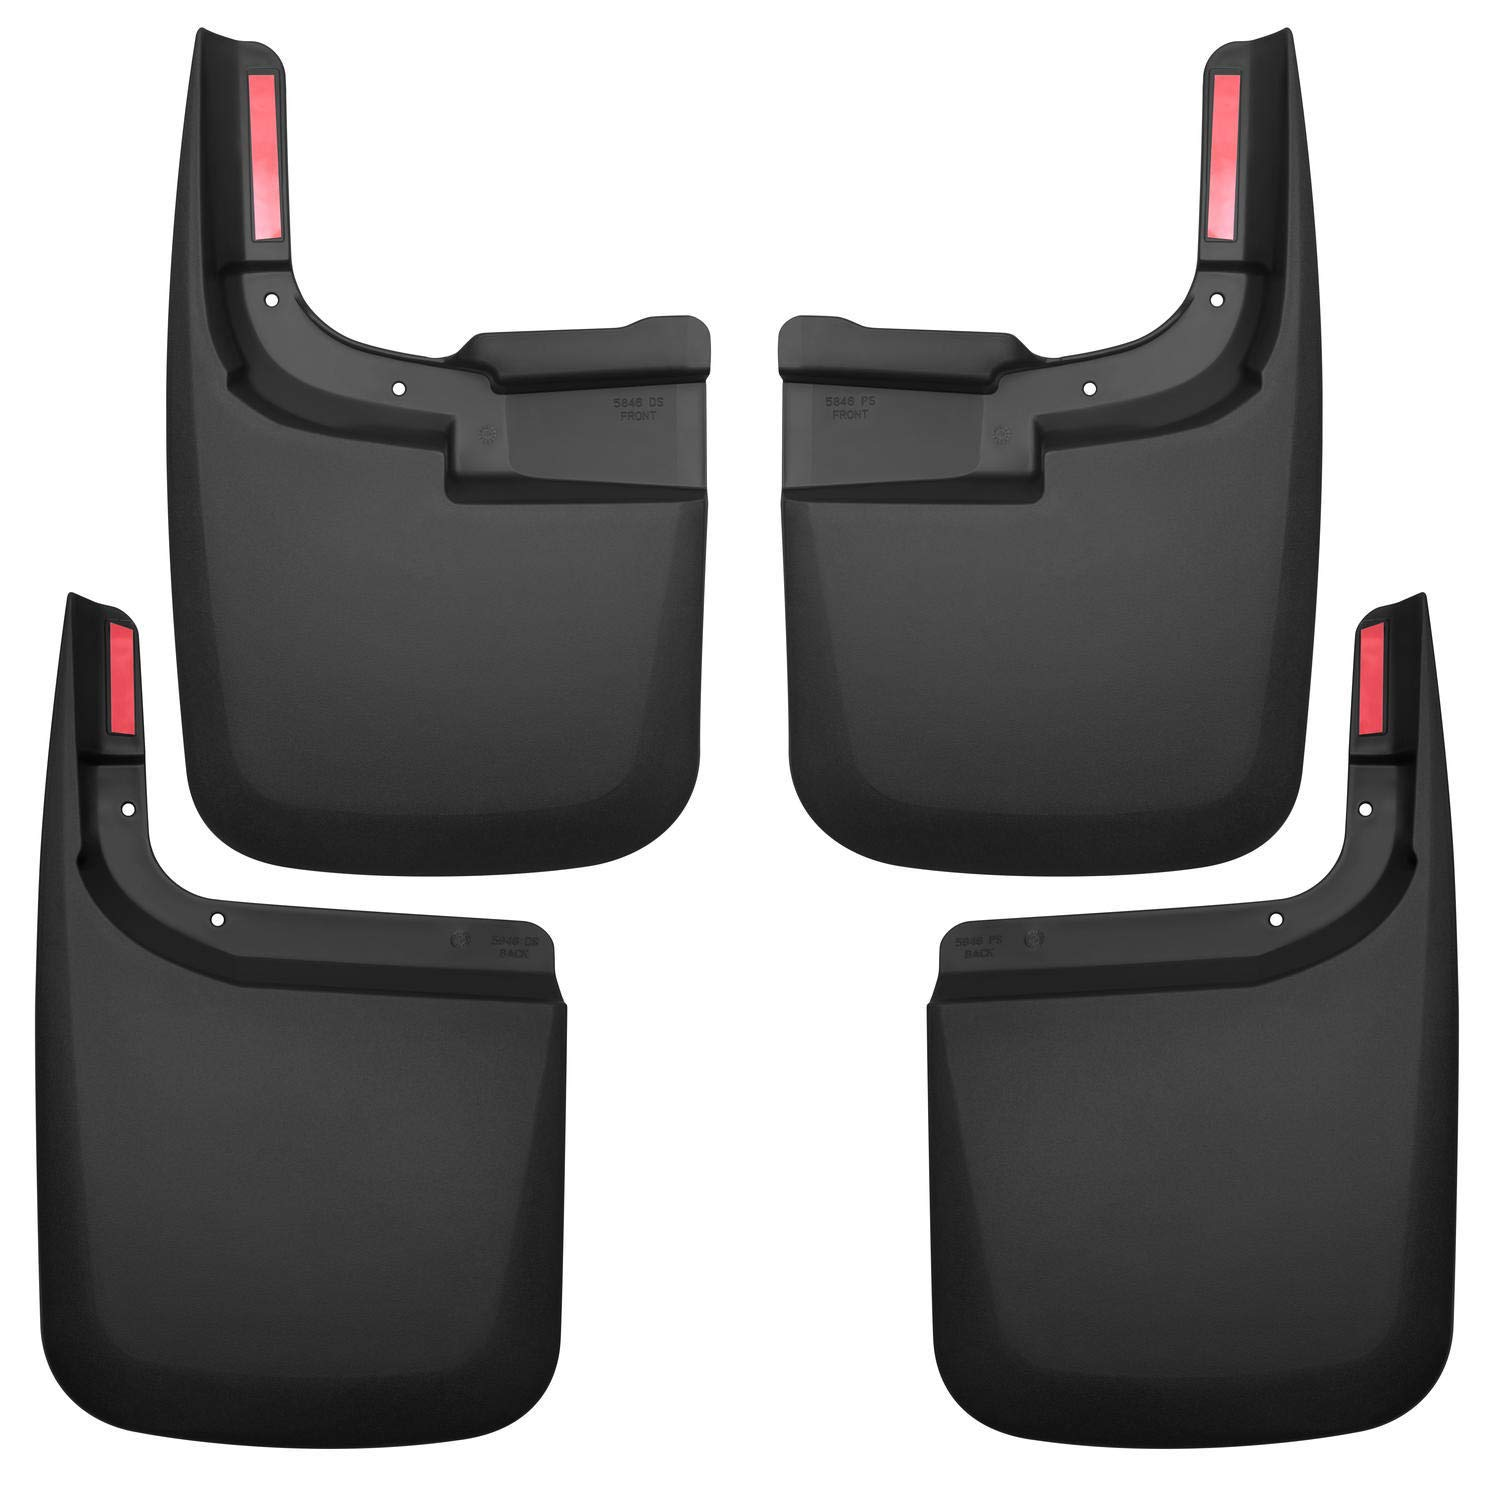 Husky Liners 58466 Set Black Front /& Rear Mud Guards Fits 15-17 F150 Without OE Flares